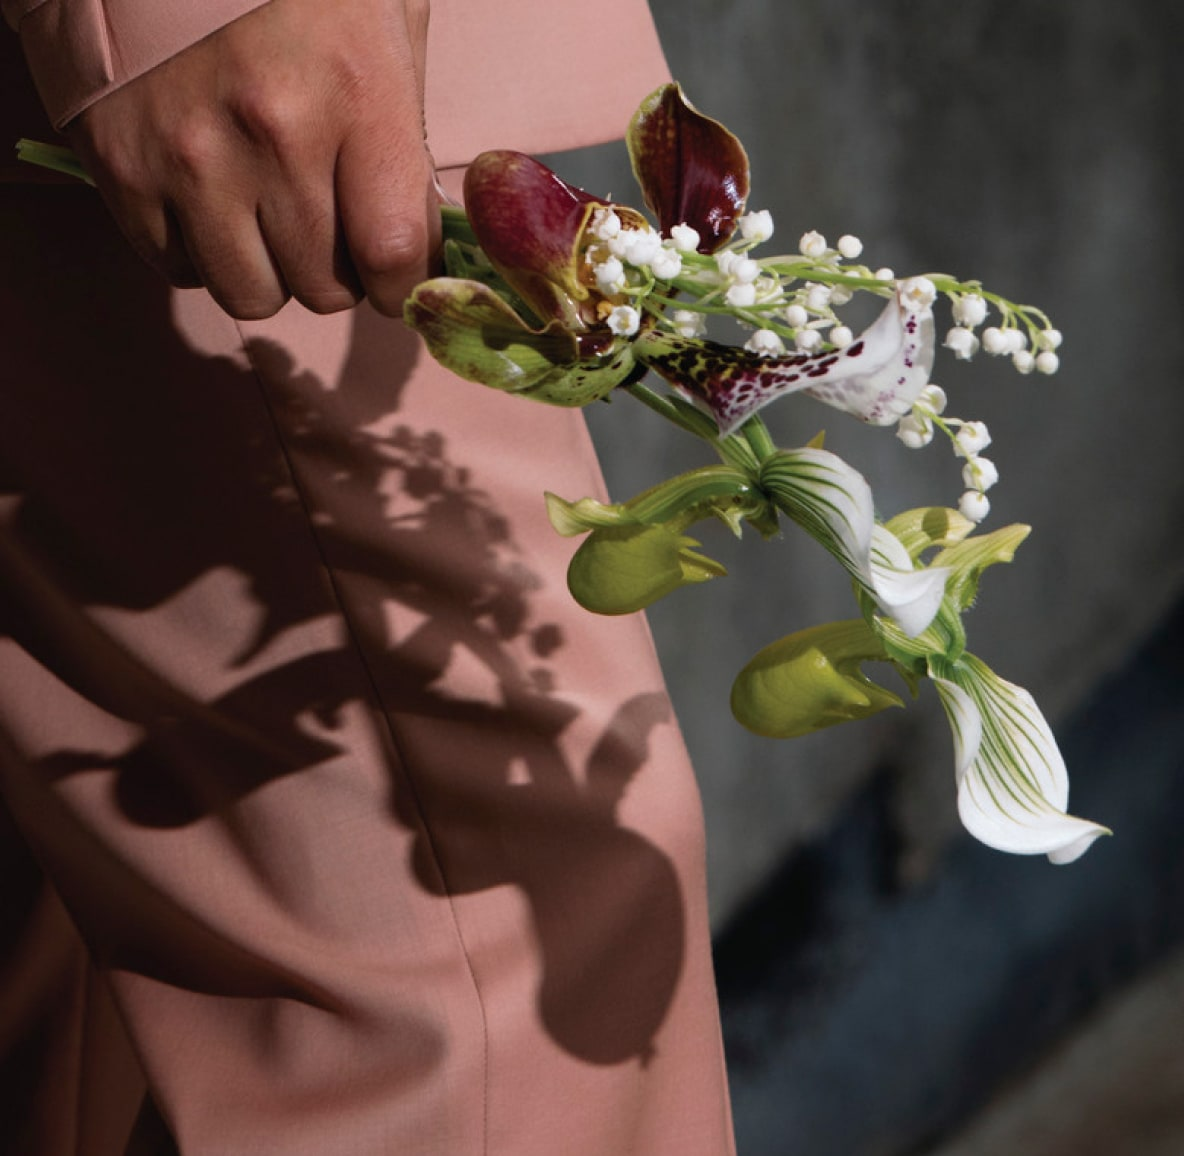 A person in a pink suit holding a simple stem of orchids